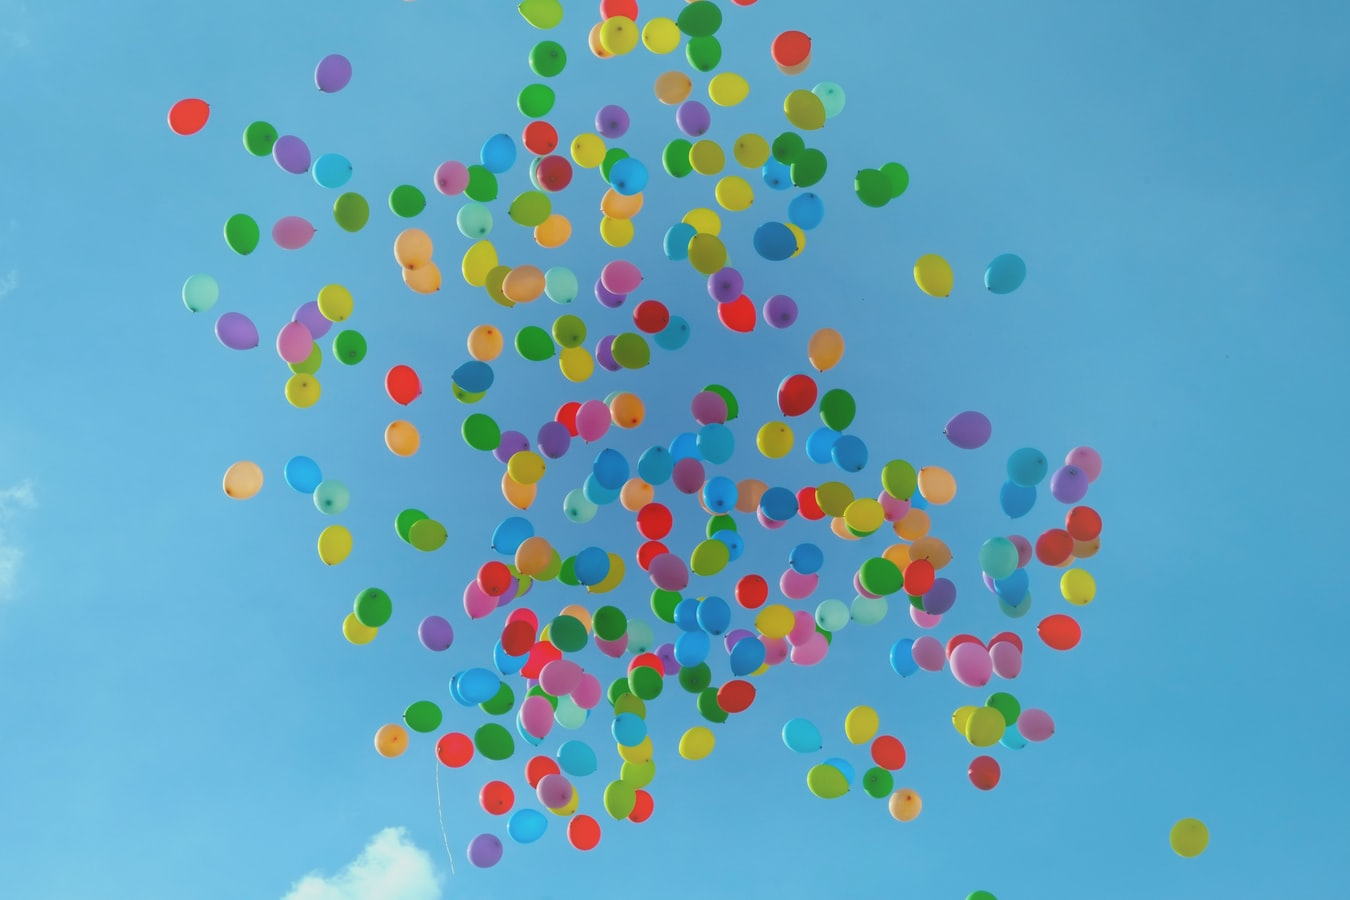 A group of many colourful balloons float in the sky.